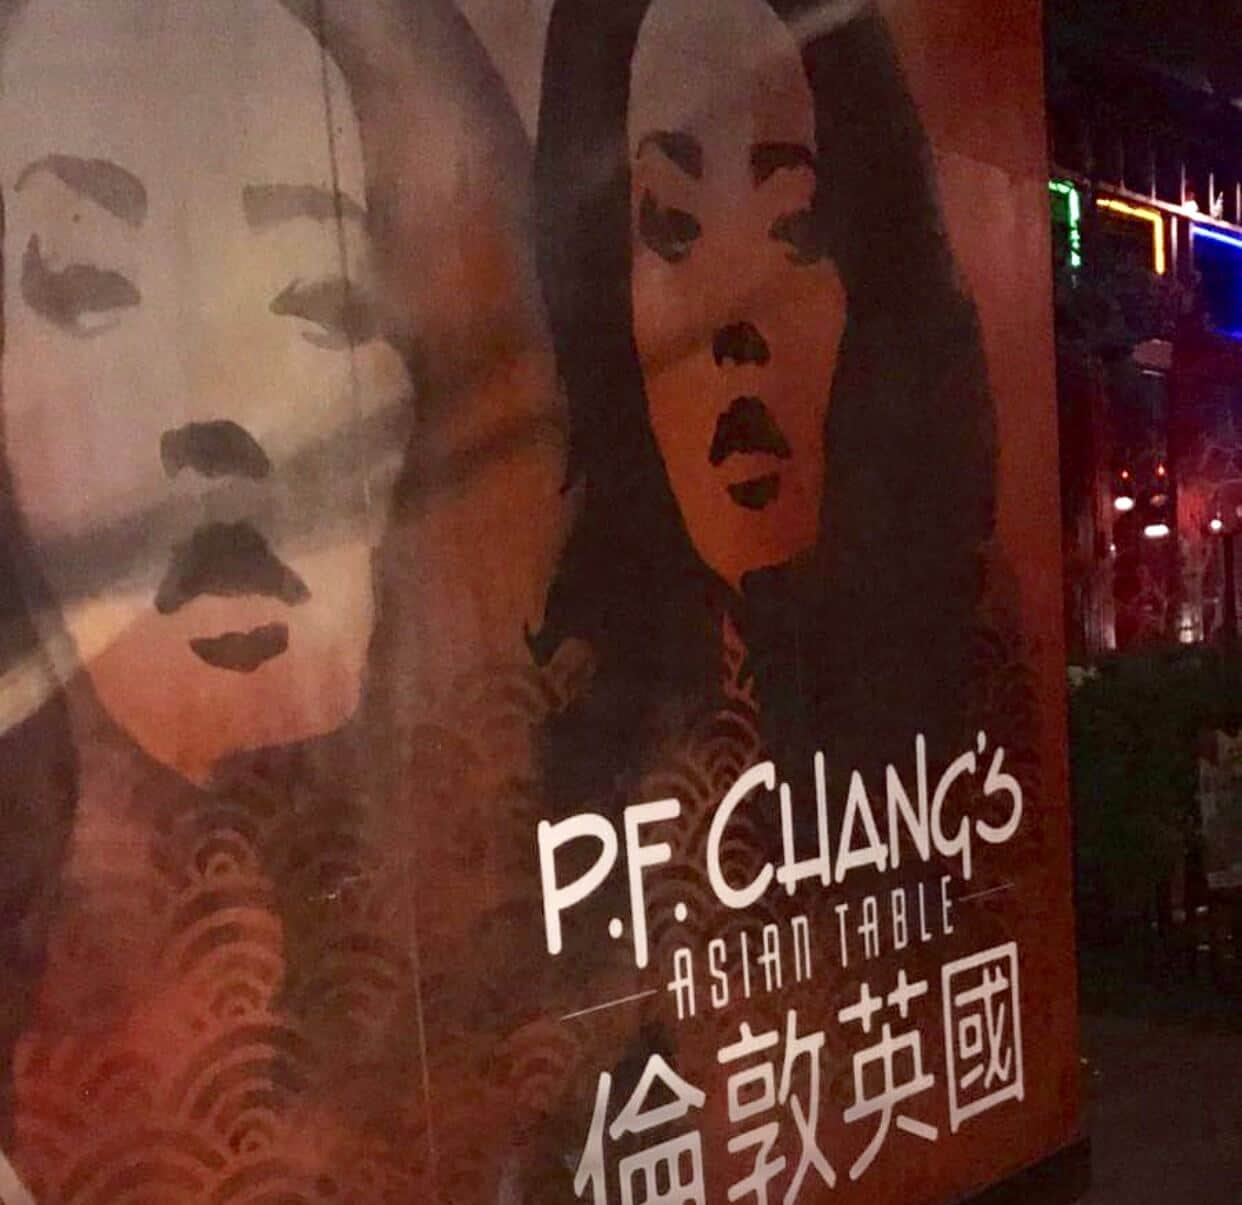 PF changs poster art